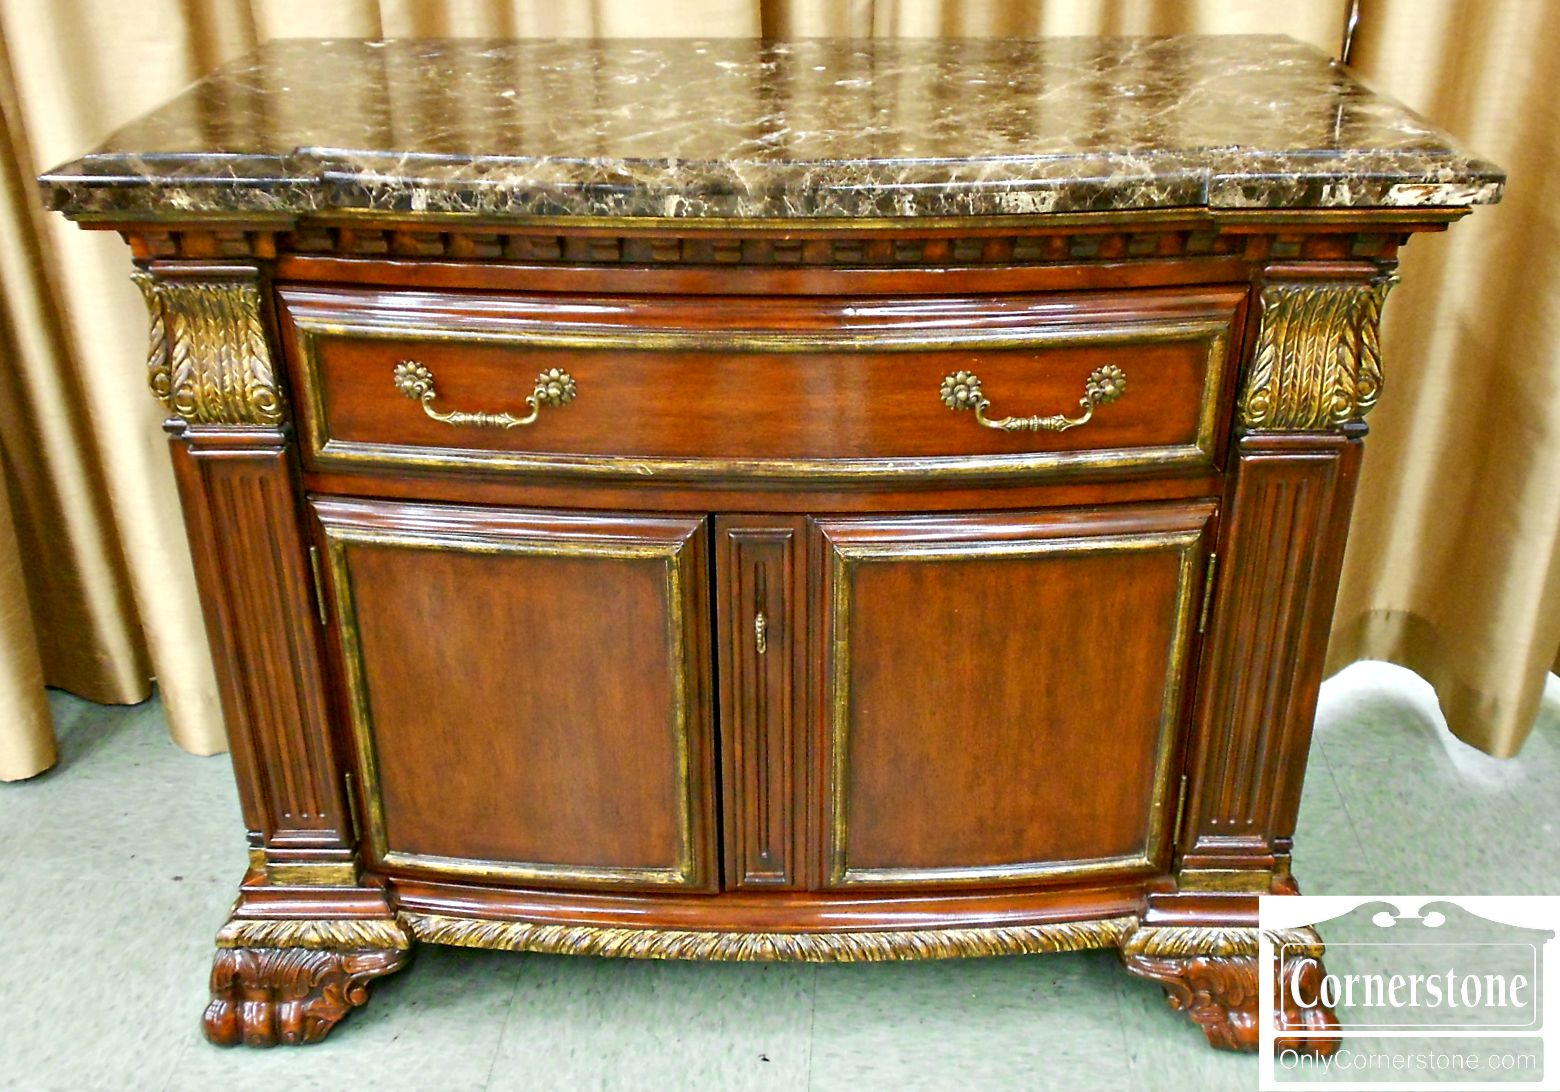 5670-515 Marge Carson French Empire Marble-Top Cabinet or Buffet